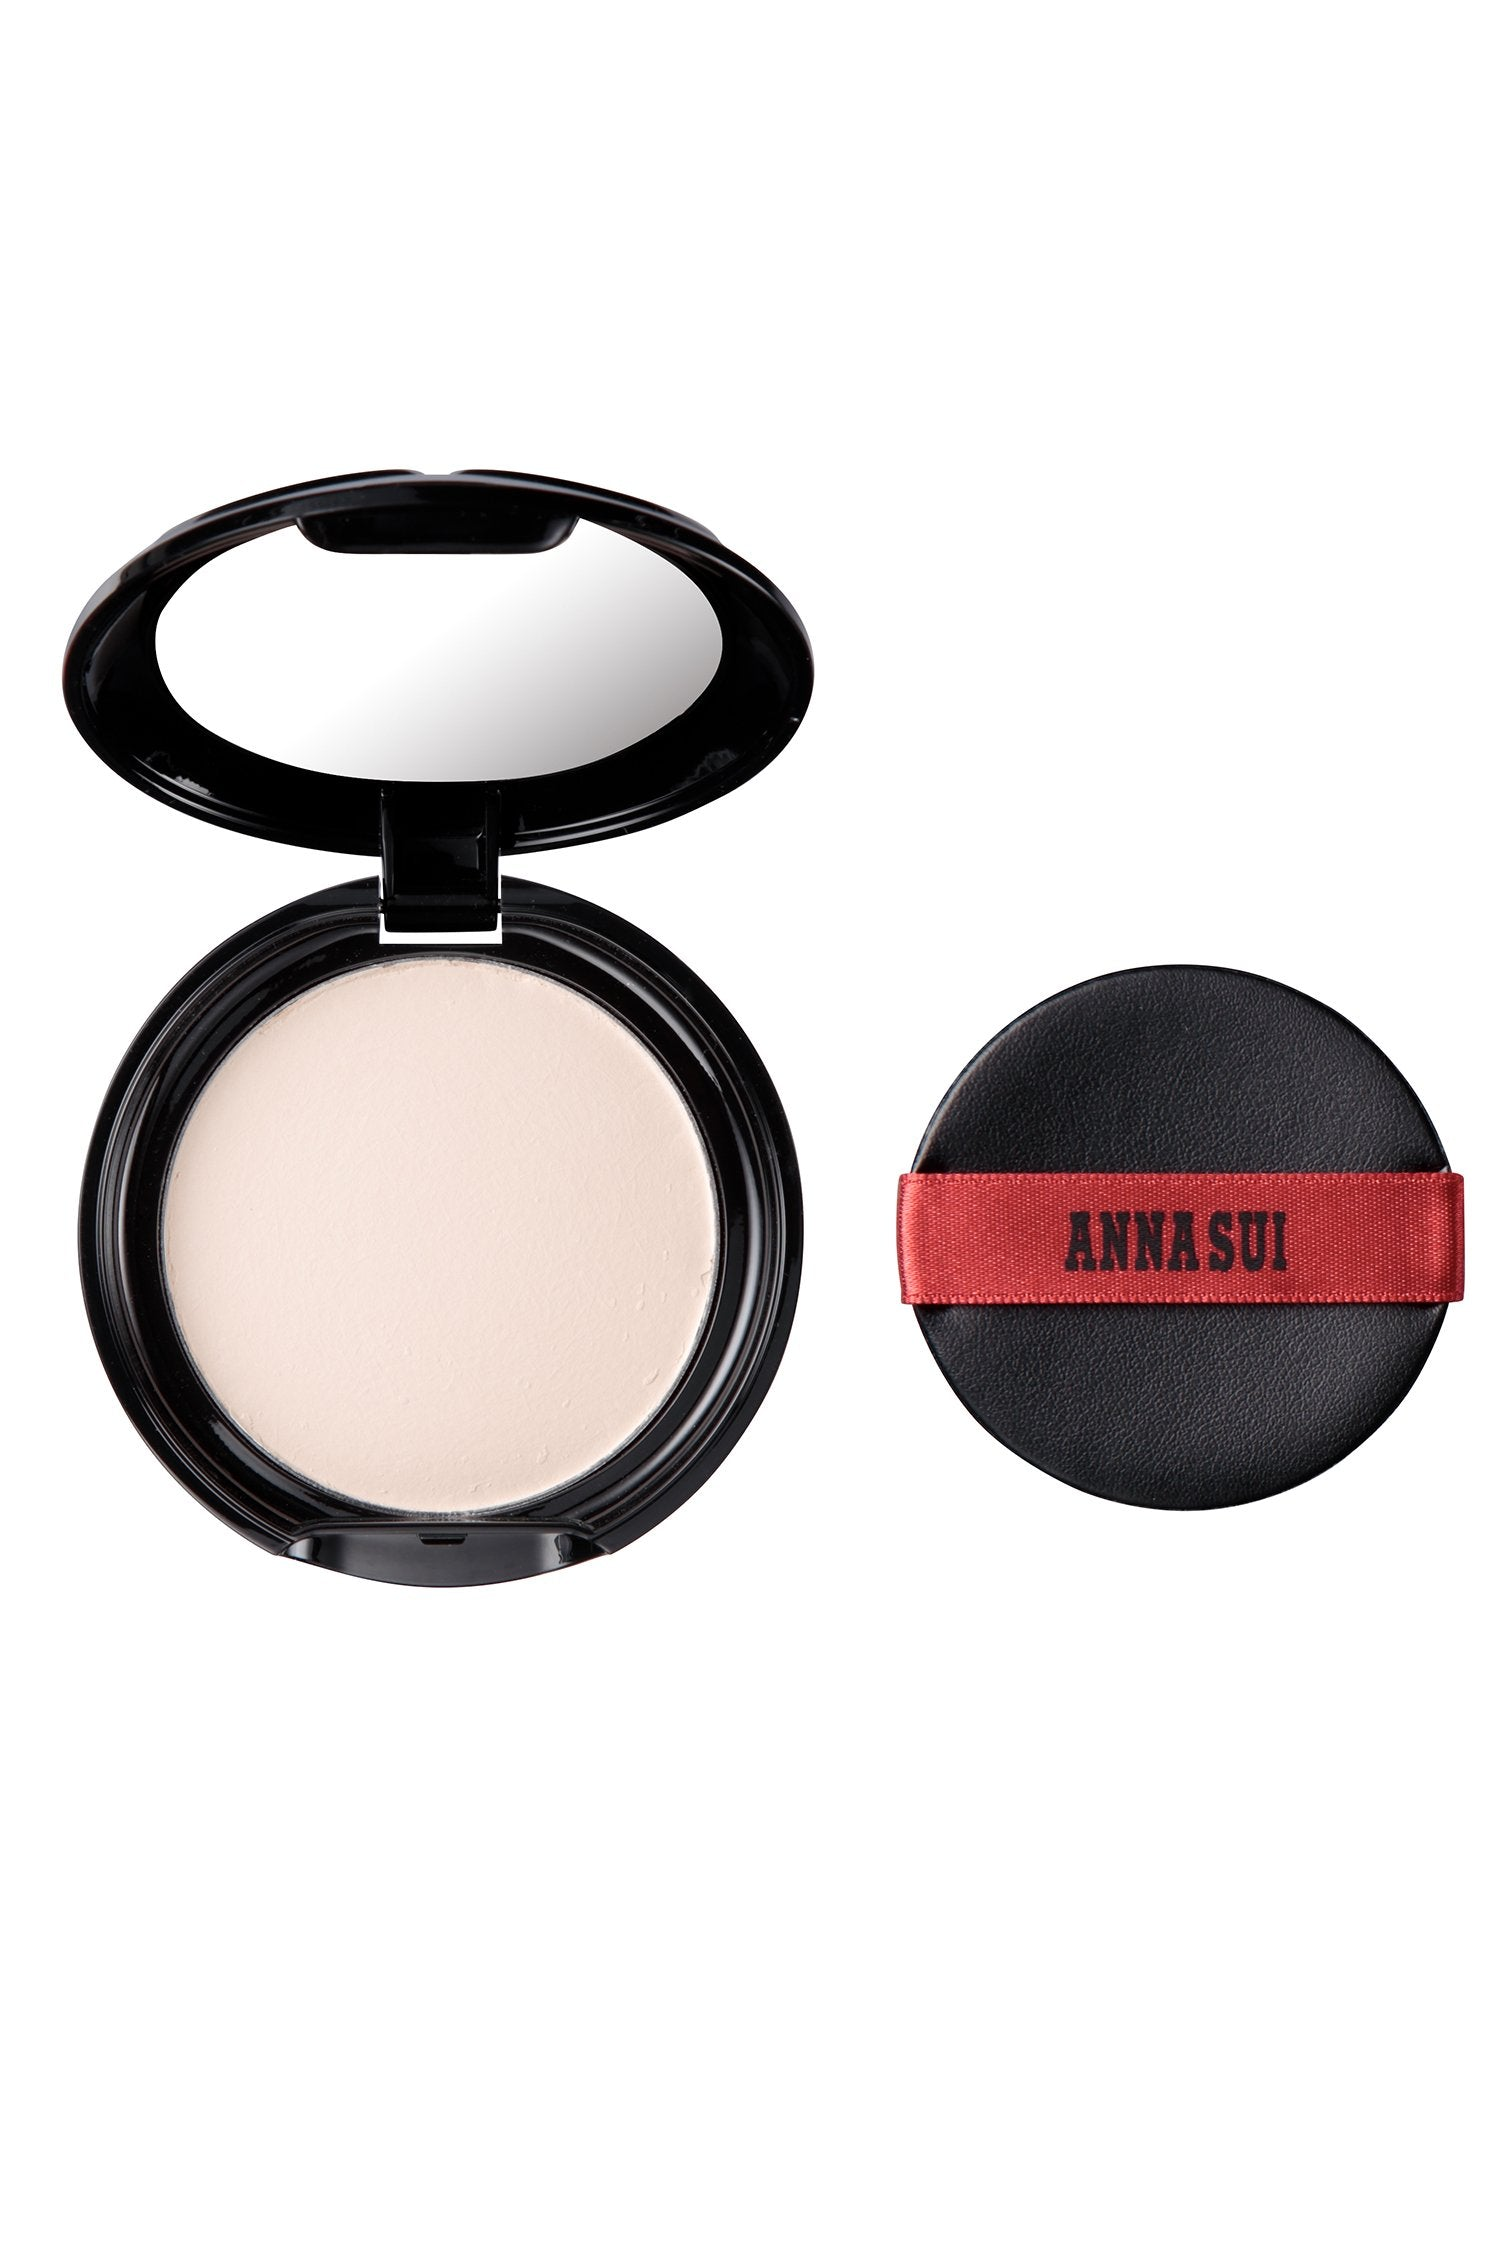 New: Sui Black Pressed Powder - Anna Sui